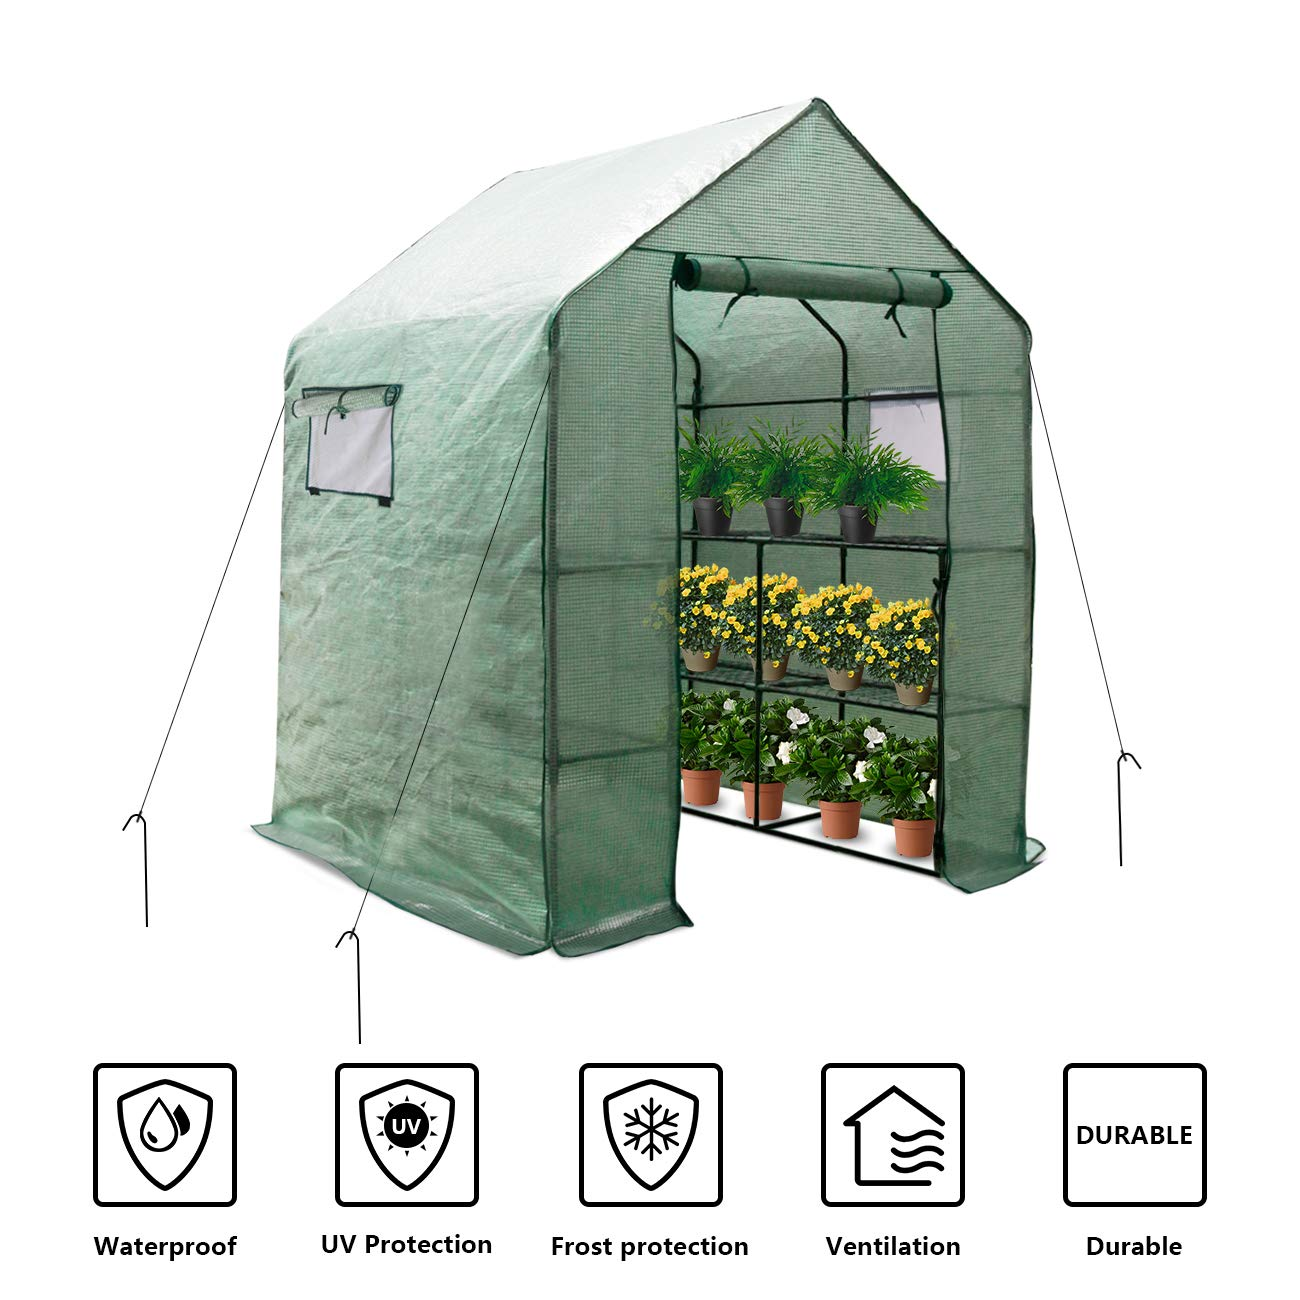 LINLUX Large Portable Walk-in Plant Greenhouse with PE Cover, 2 Tiers 8 Shelves Waterproof Gardening Steeple Greenhouse, Window Version and Roll-Up Zipper Door (56'' W x 56'' D x 77'' H Inch) by LINLUX (Image #1)